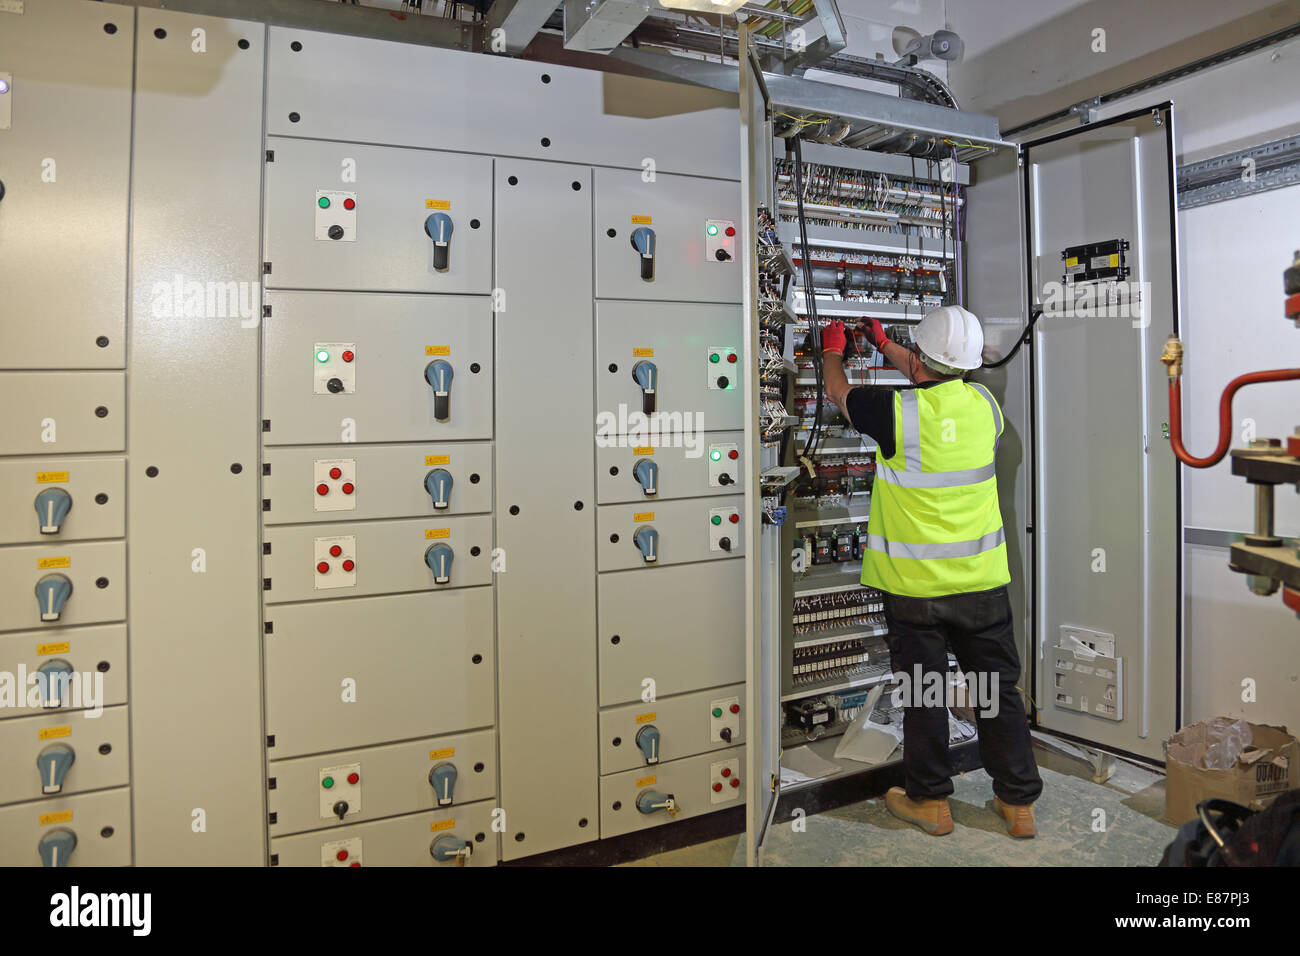 A building services engineer works in an electrical control ...